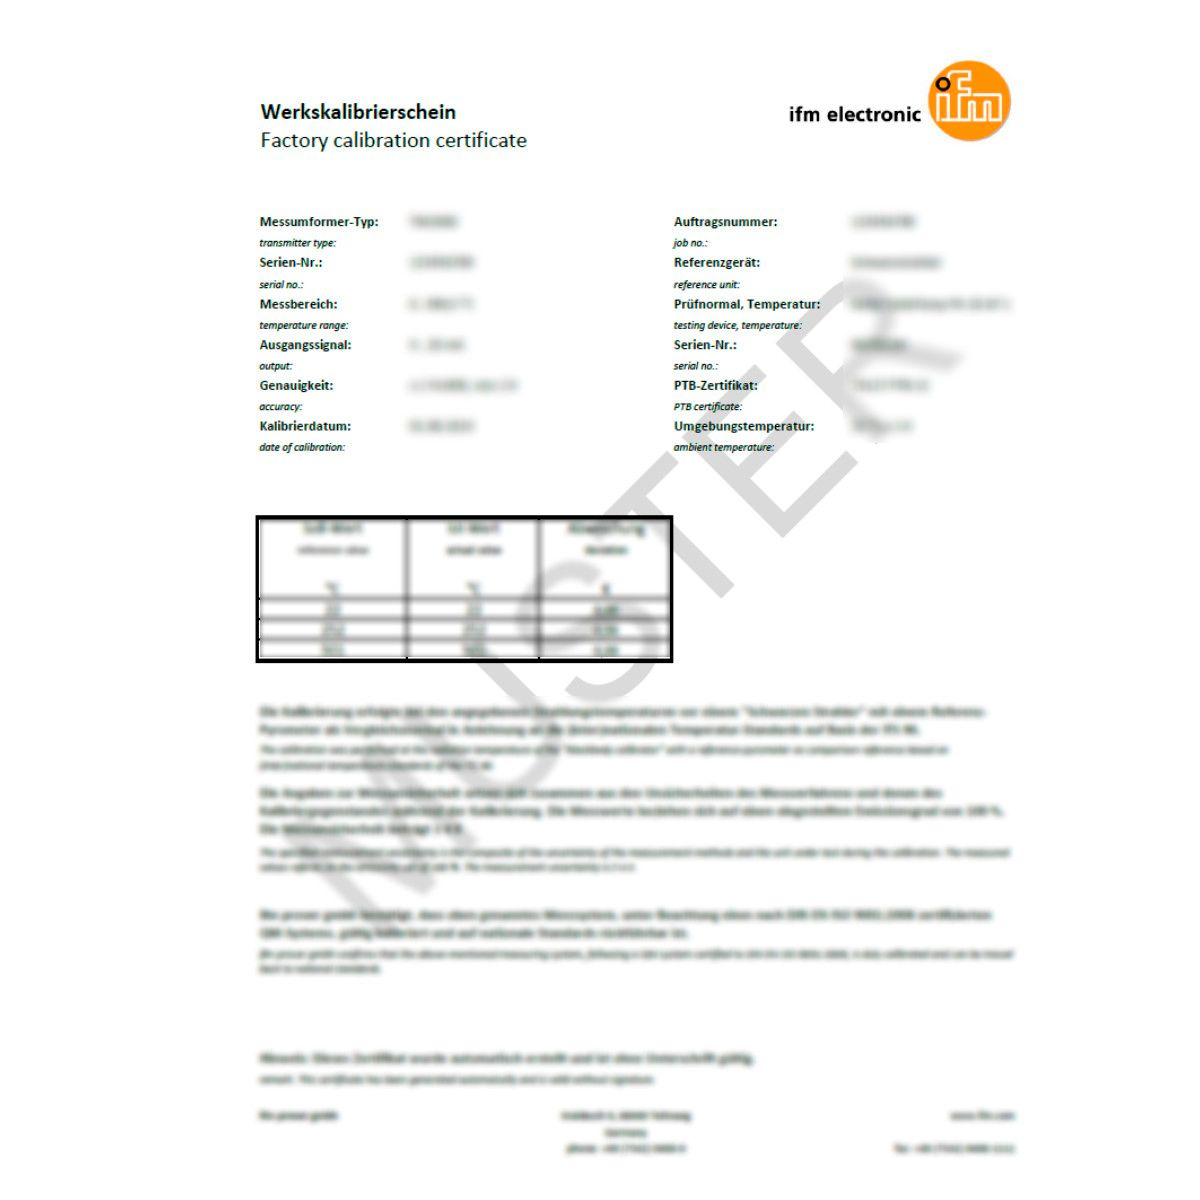 Zc0004 iso calibration certificate for pressure sensors and flow zc0004 iso calibration certificate for pressure sensors and flow sensors ifm electronic yadclub Image collections